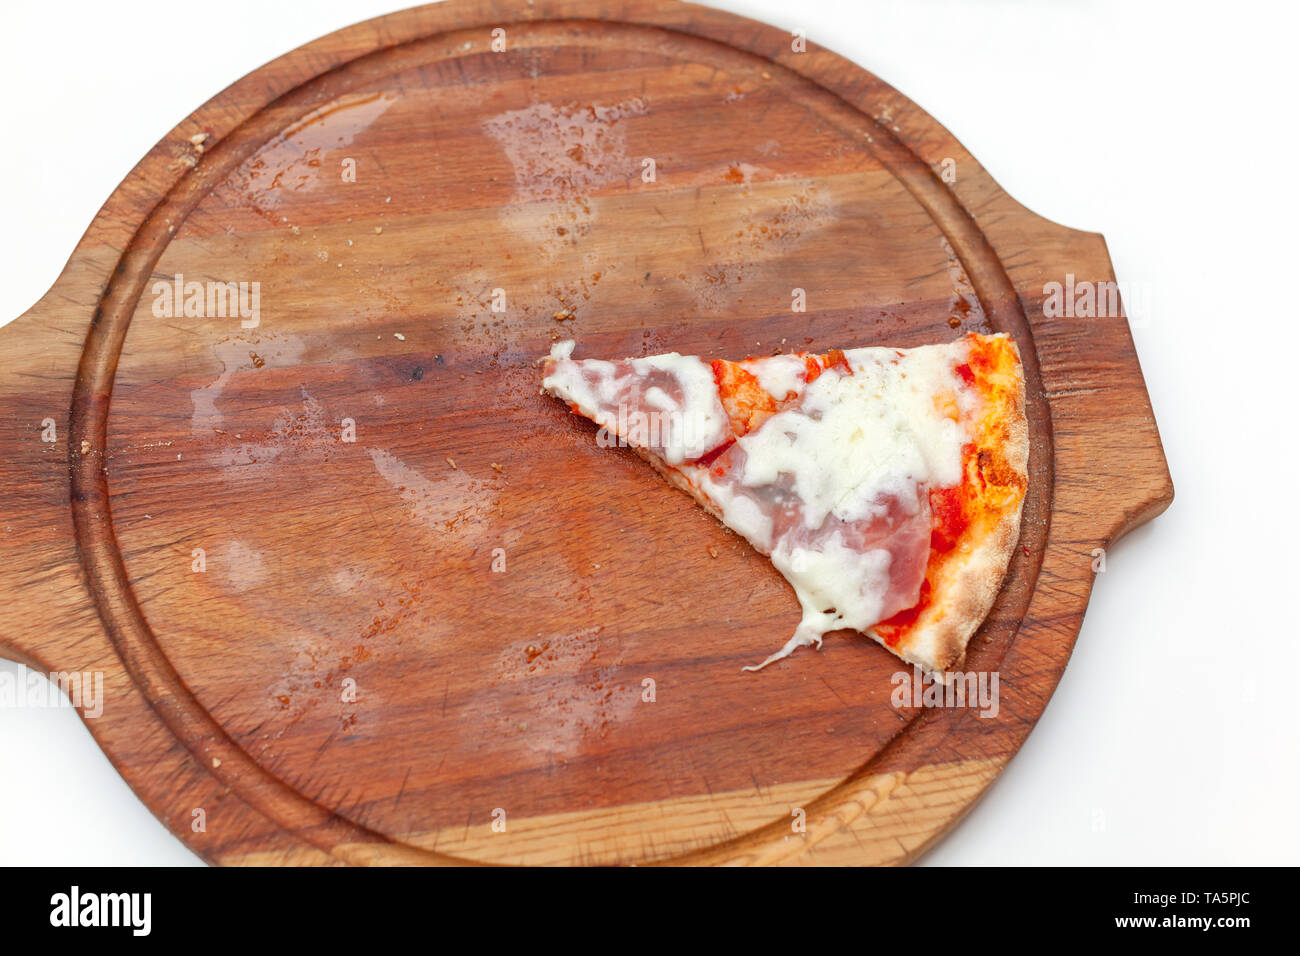 Last one slice of delicious Italian pizza with ham and cheese on wooden board on white table. Pizza time. Top view. Close-up - Stock Image